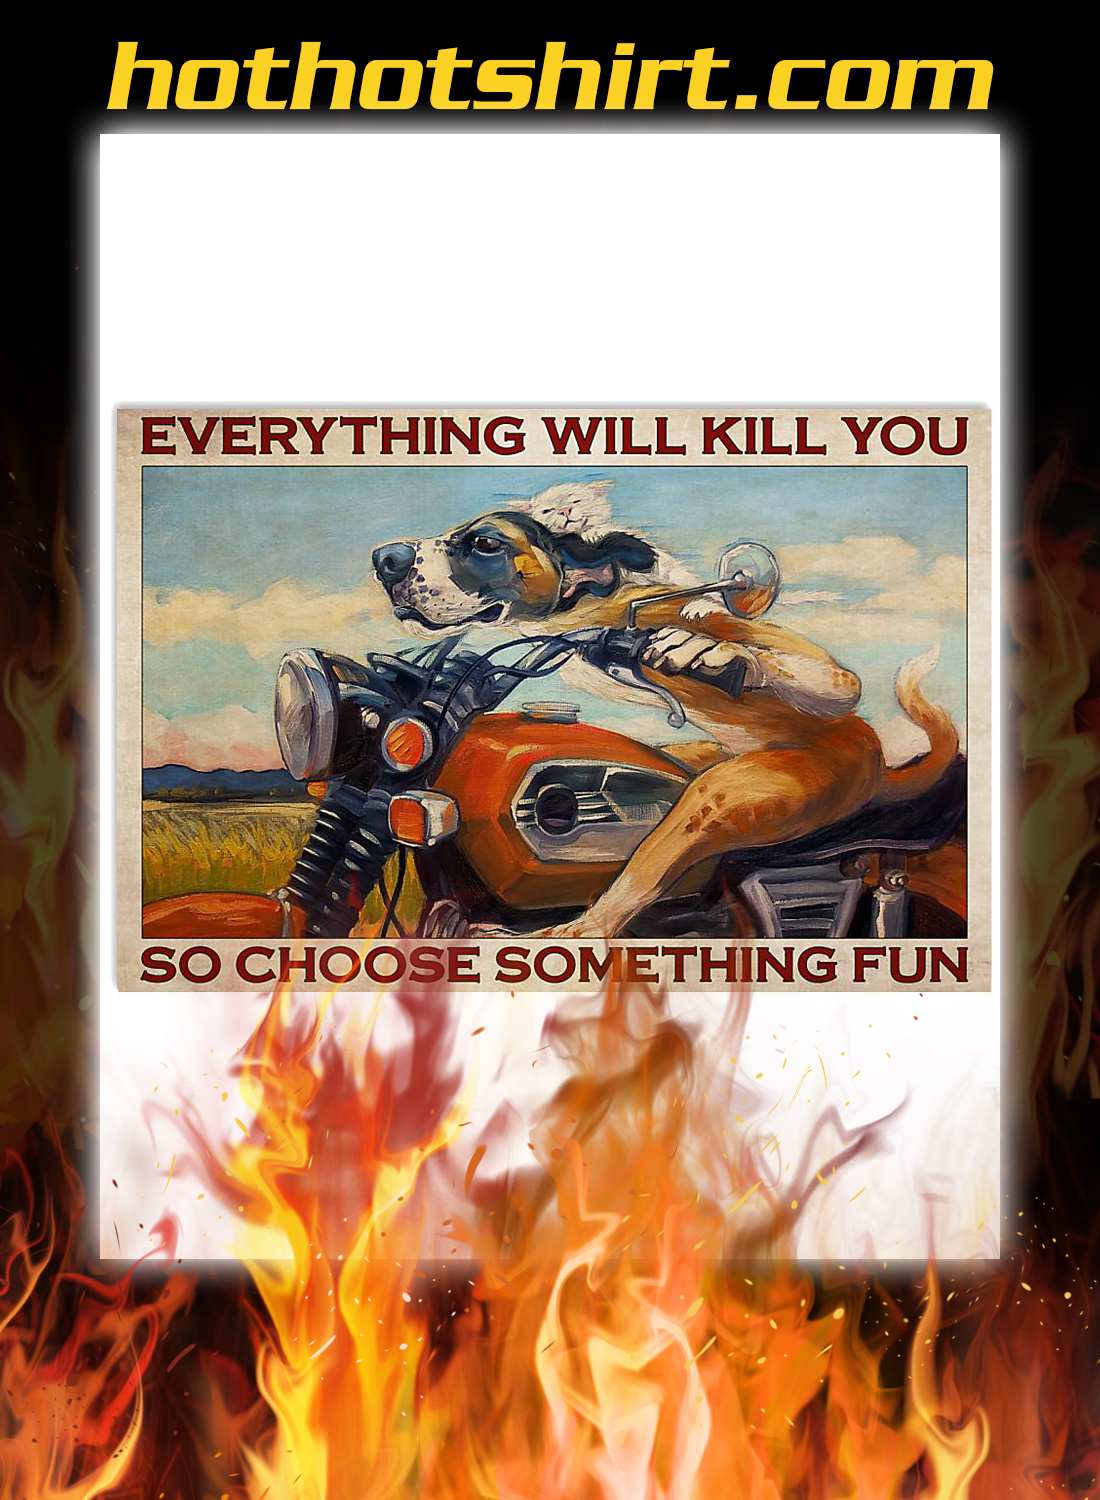 Motorcycle dog and cat everything will kill you so choose something fun poster 3